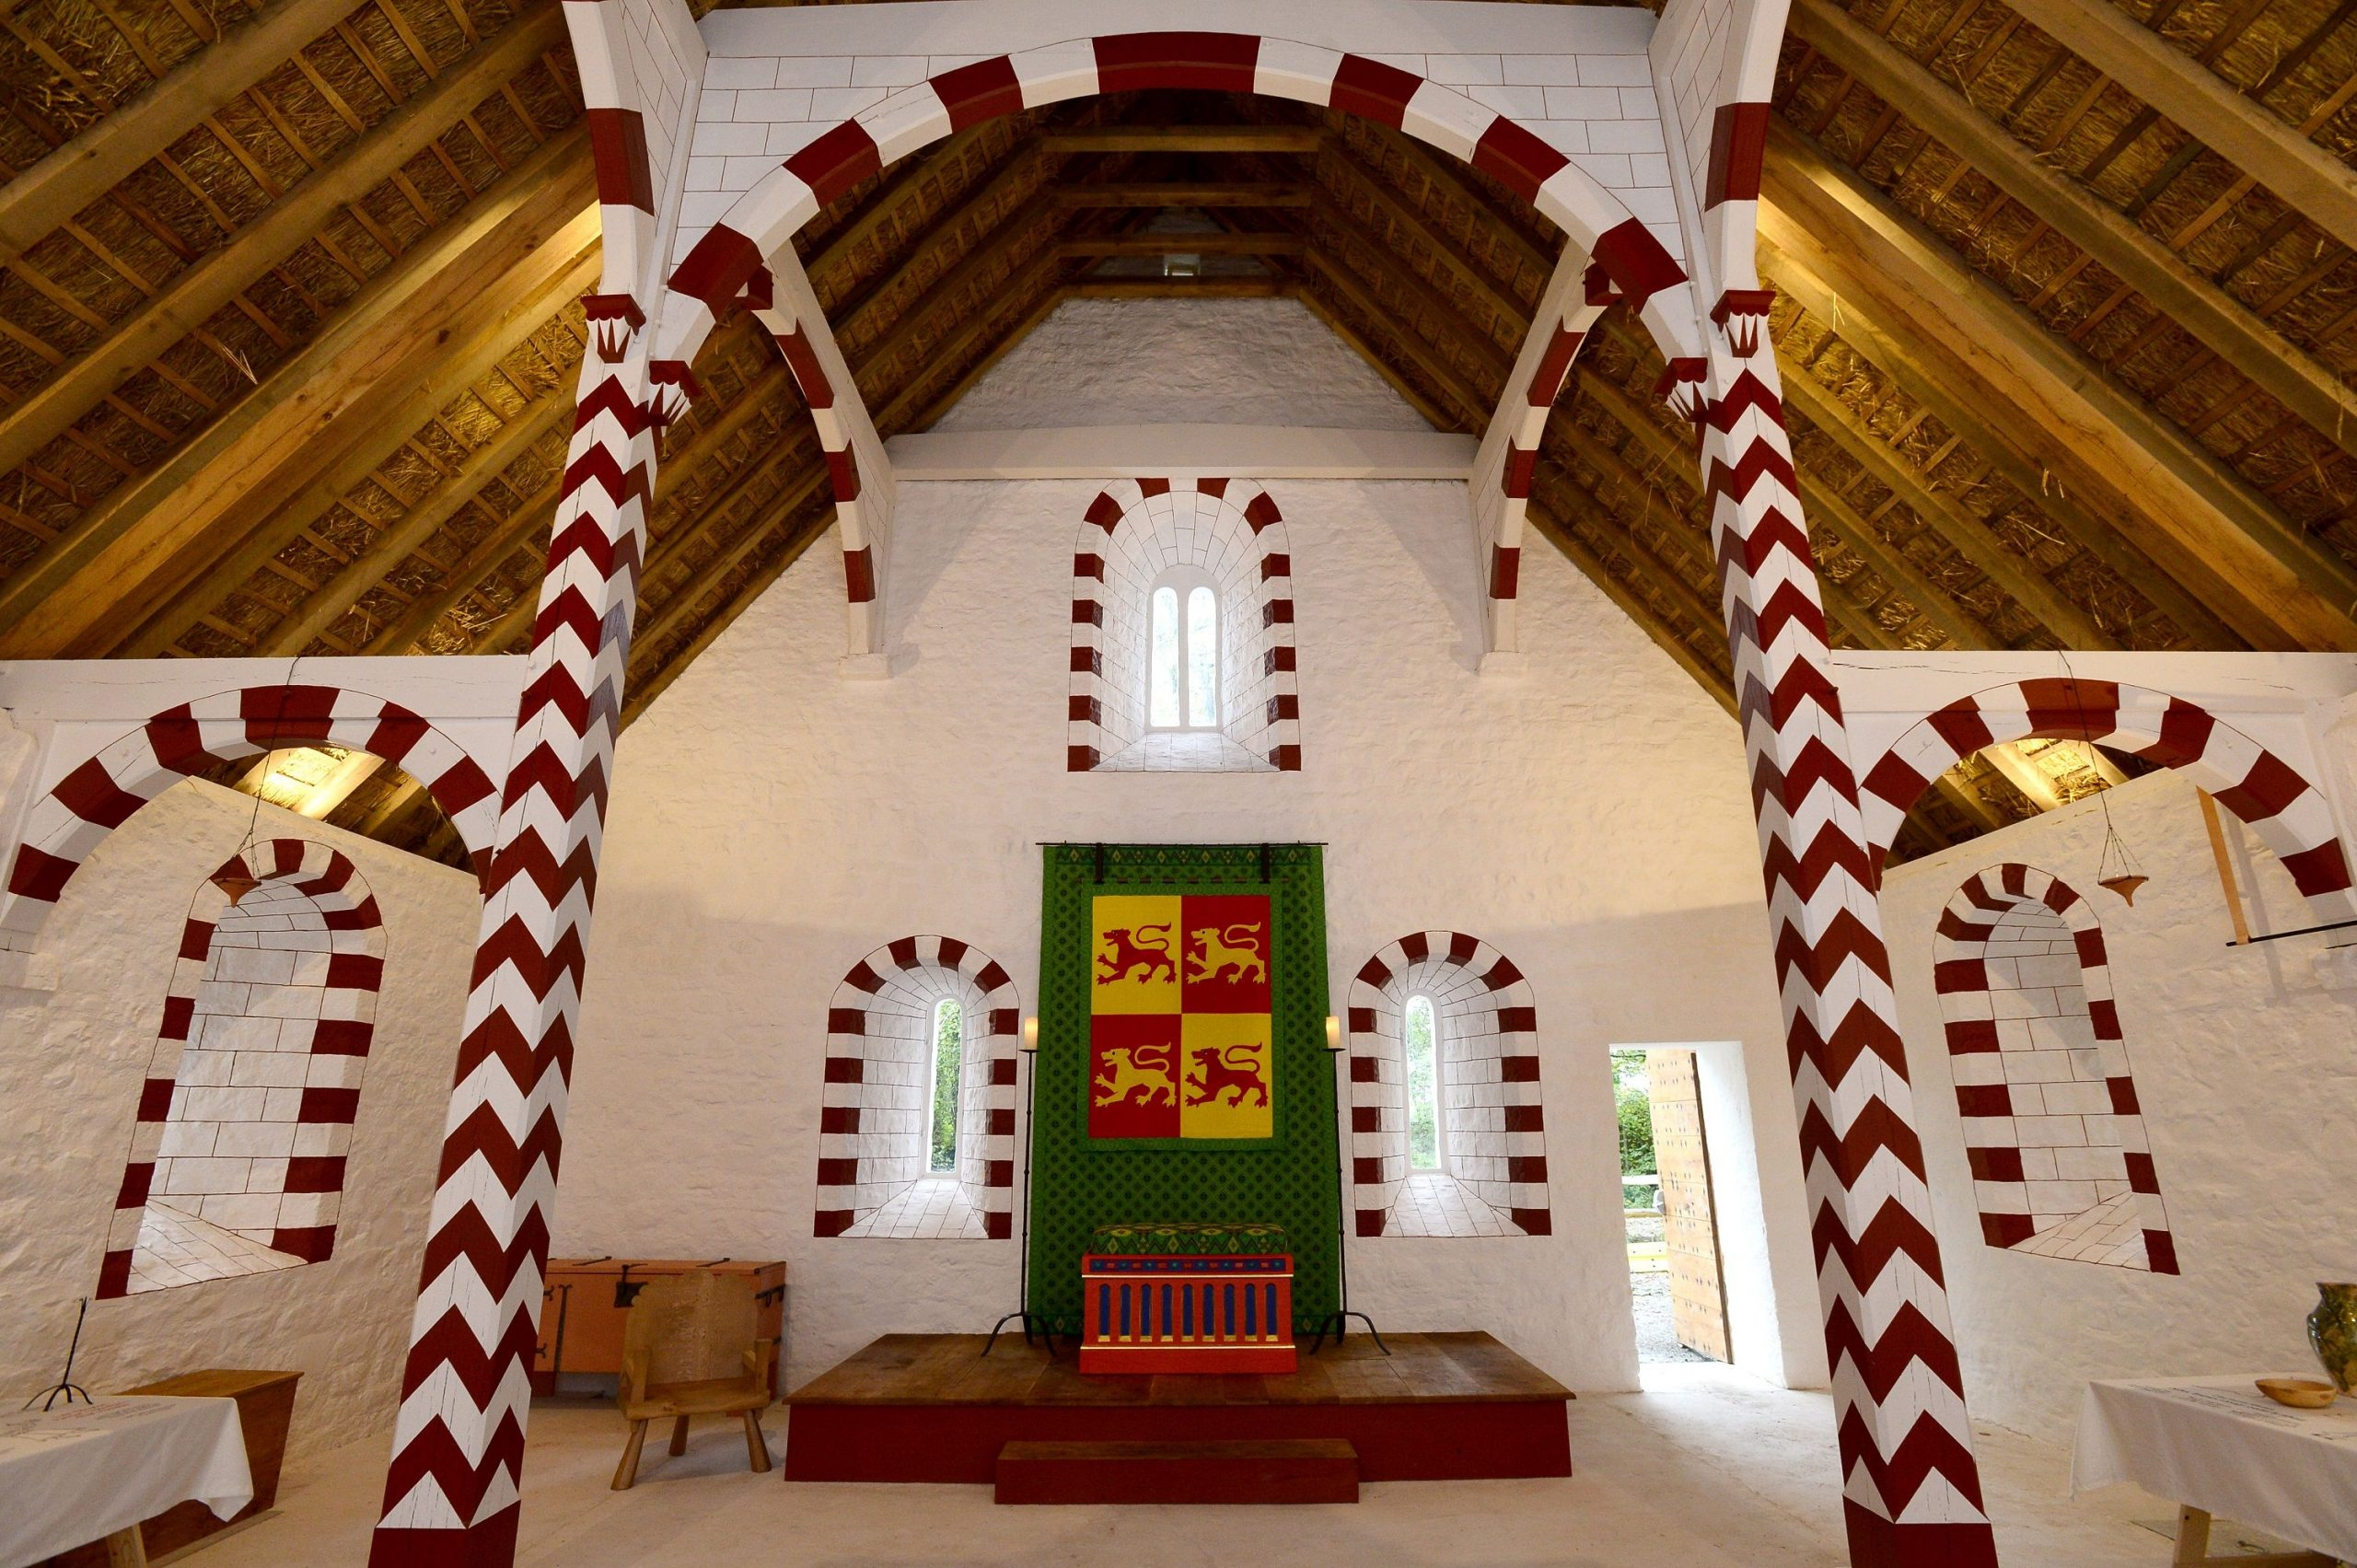 Llys Llywelyn, a recreated 13th-century hall in St Fagan's Museum, which won lat year's Art Fund Prize